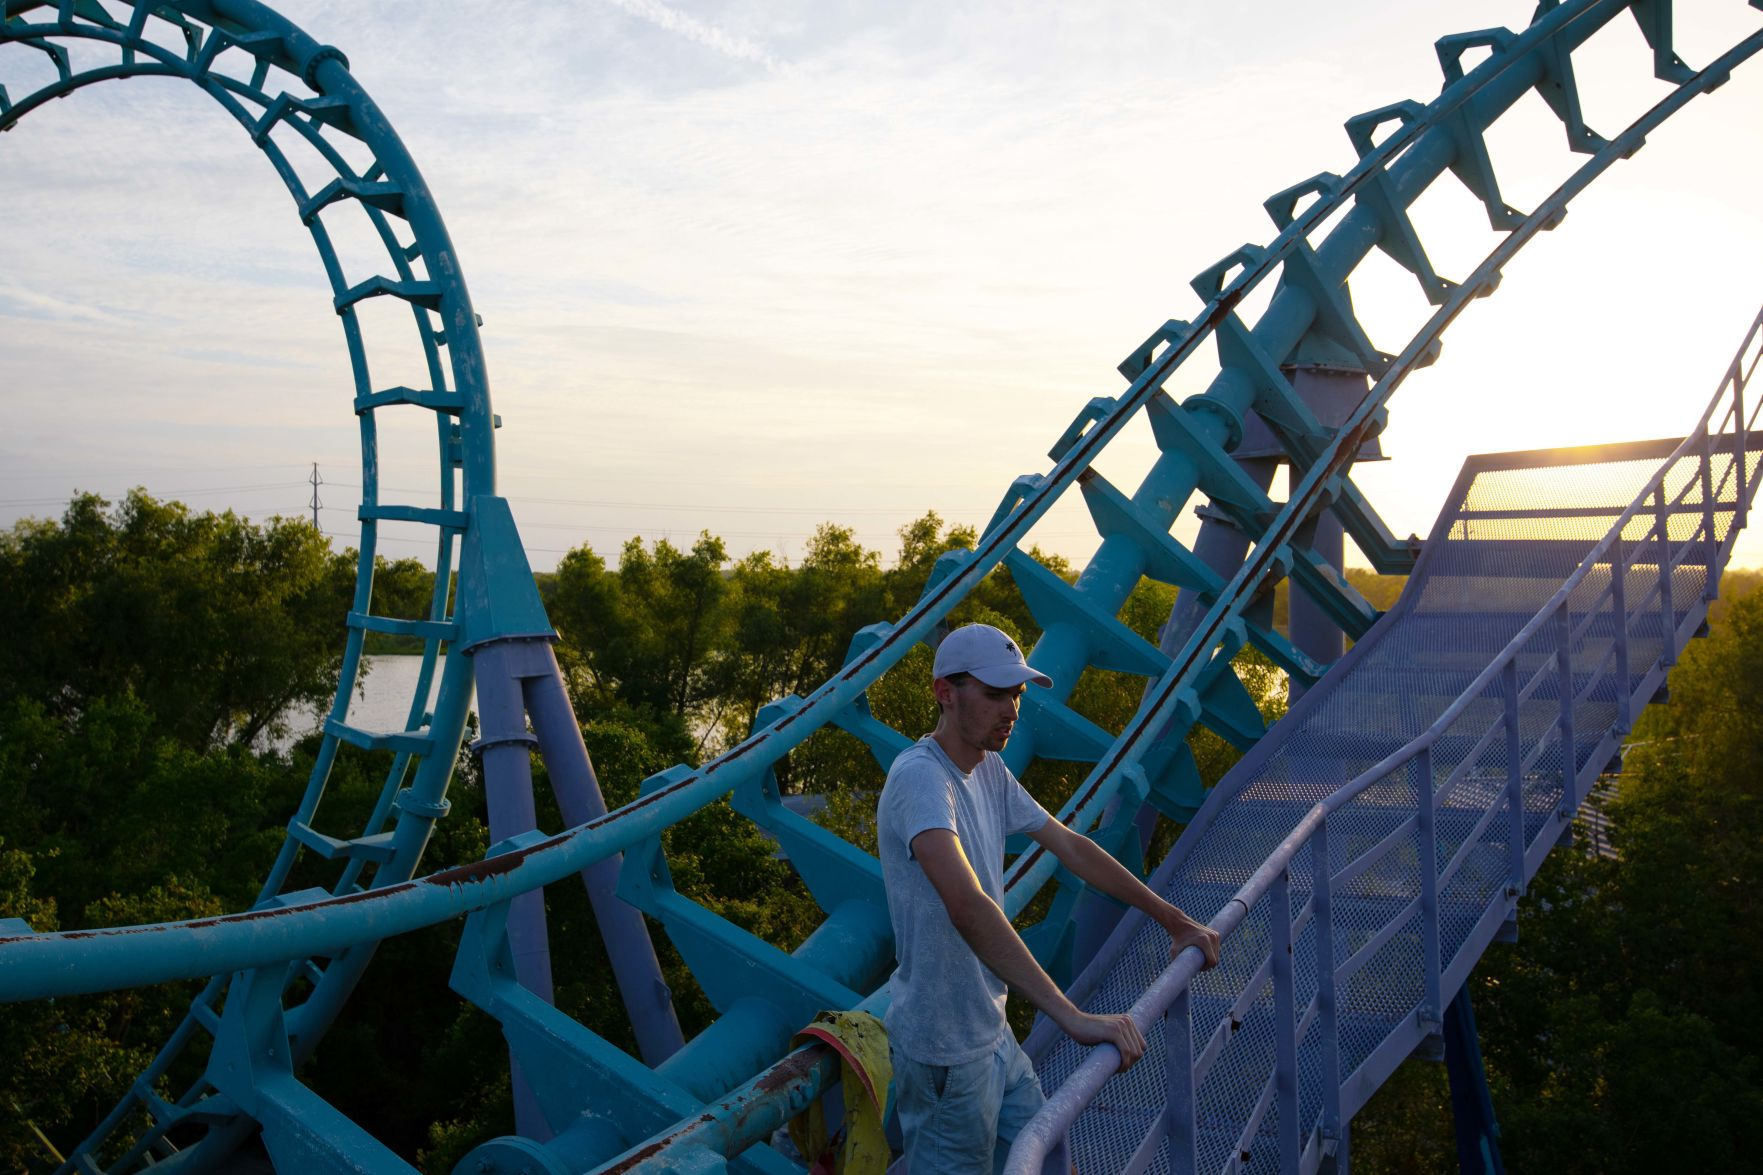 Rise And Fall Of Six Flags New Orleans Is Topic Of Documentary By 22 Year Old Youtube Star Movies Tv Nola Com